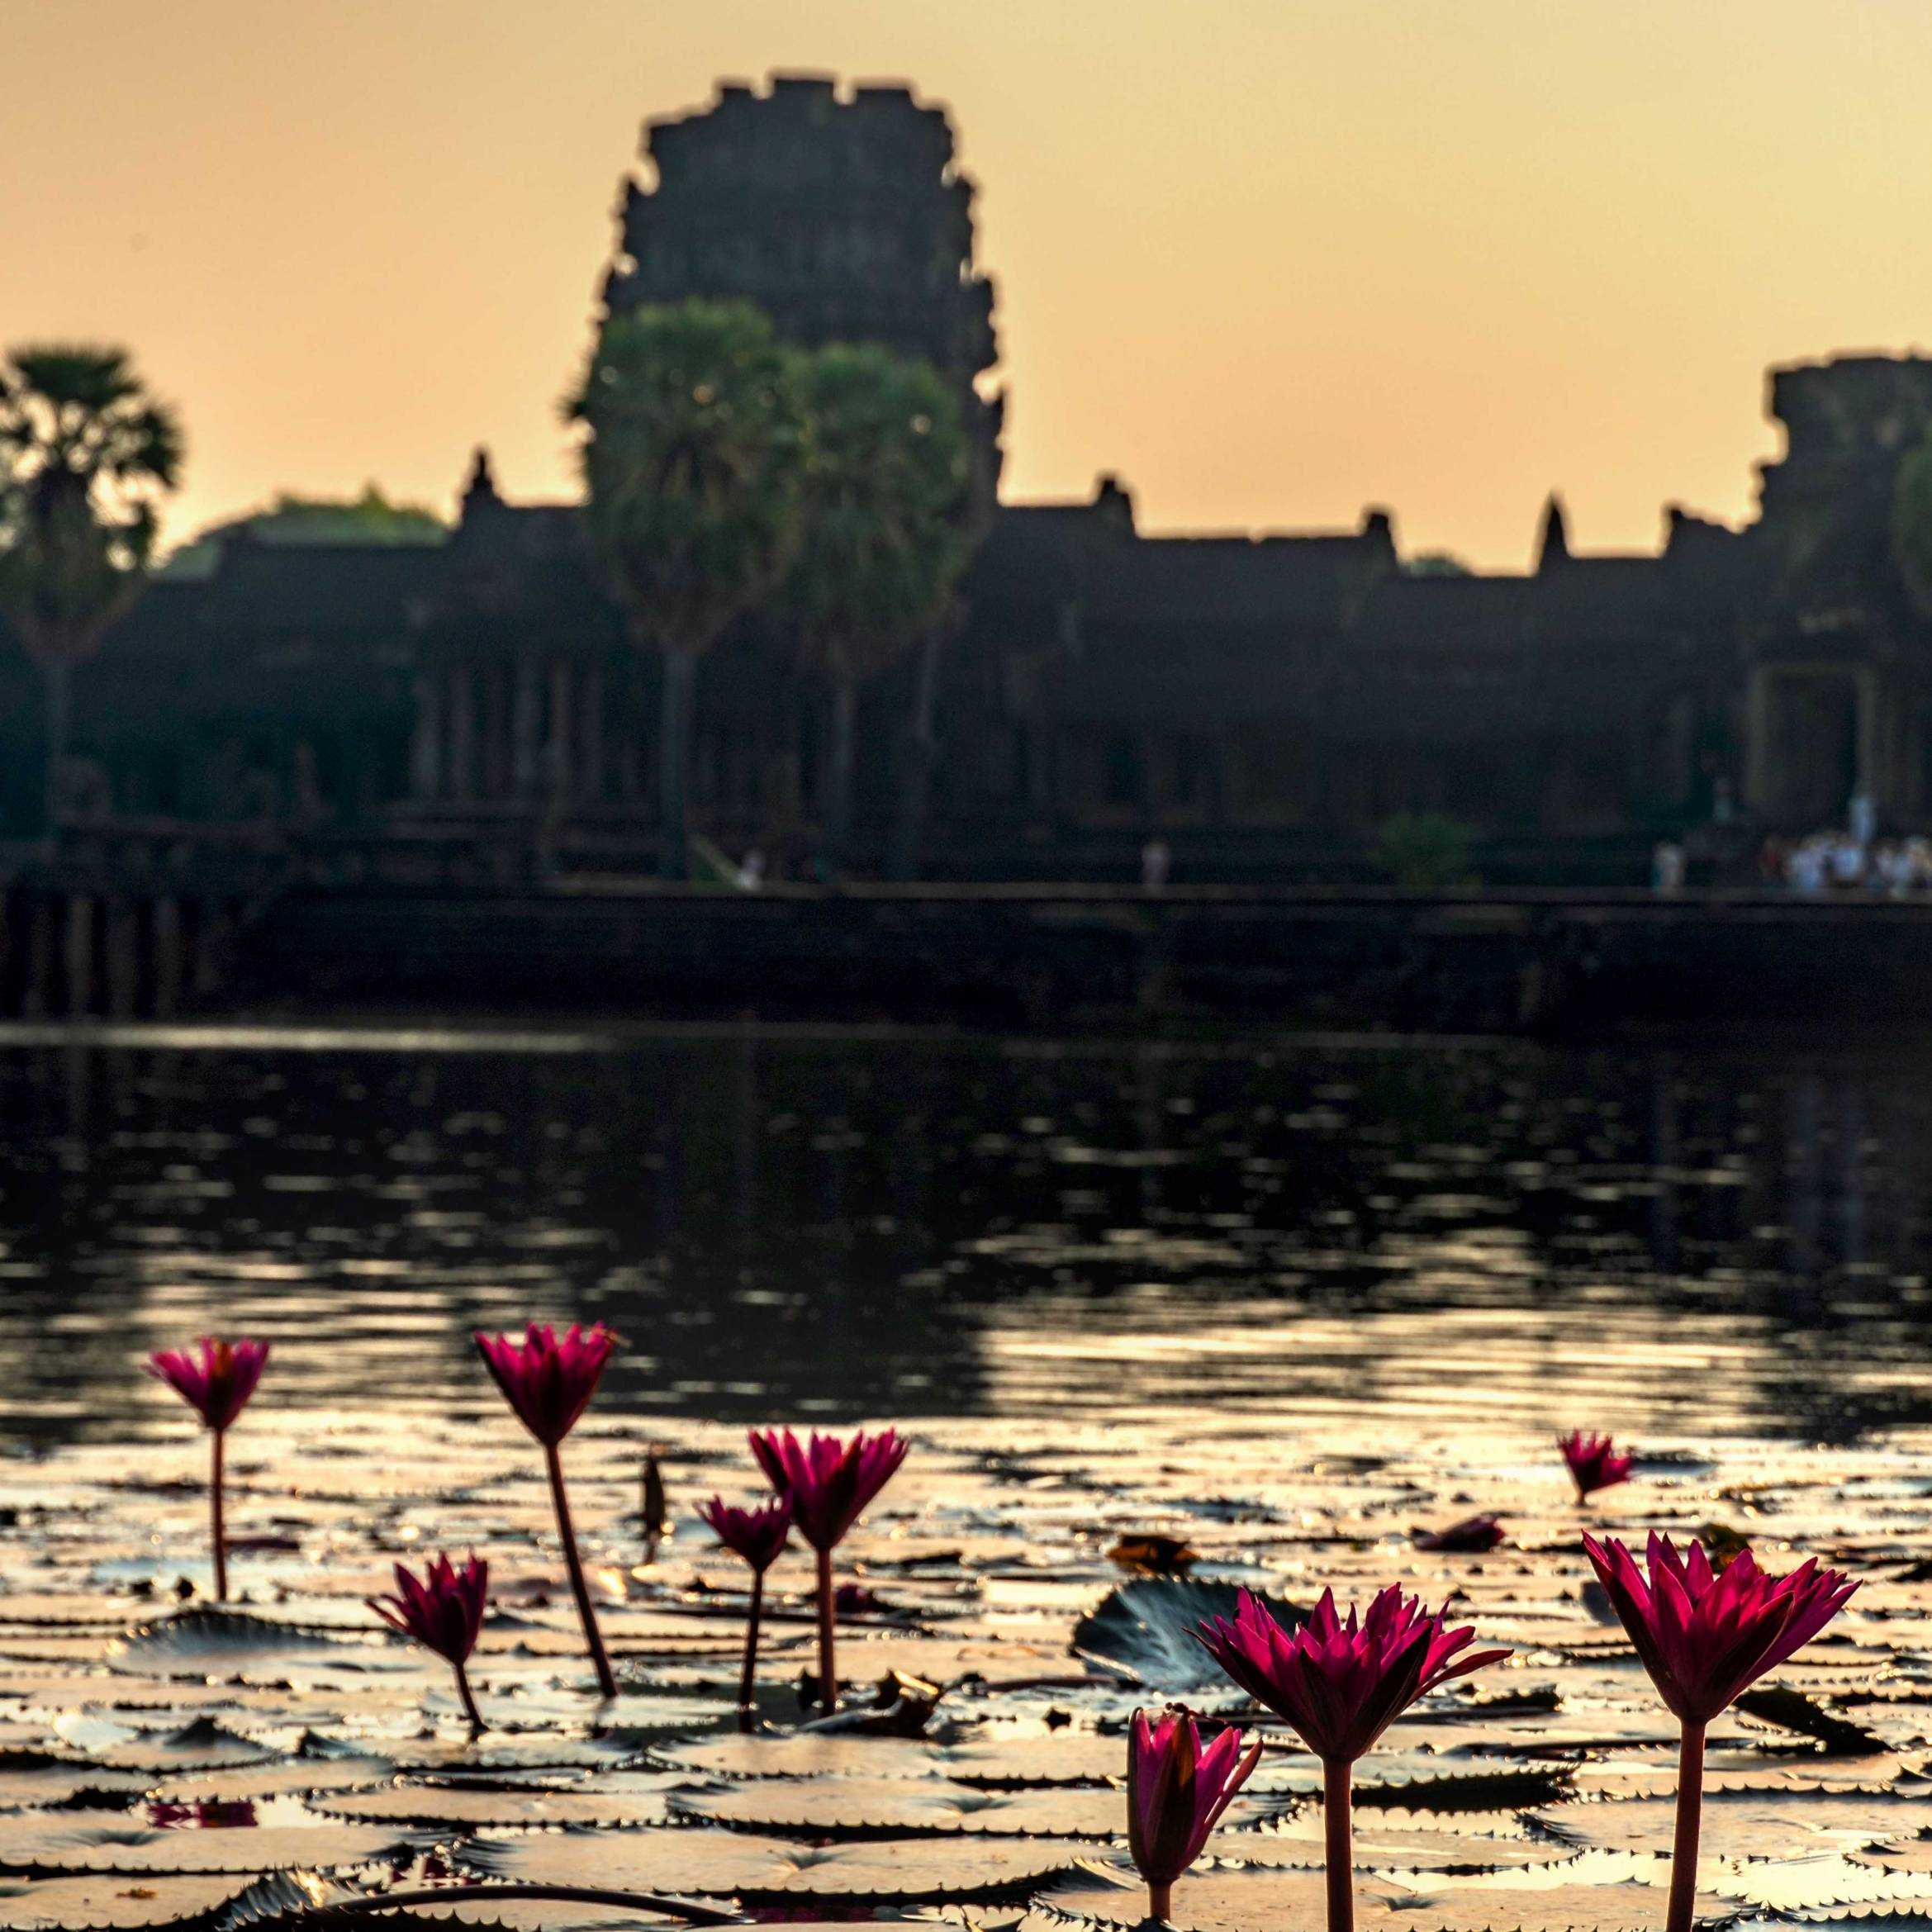 WATERLILLIES AT ANGKOR WAT